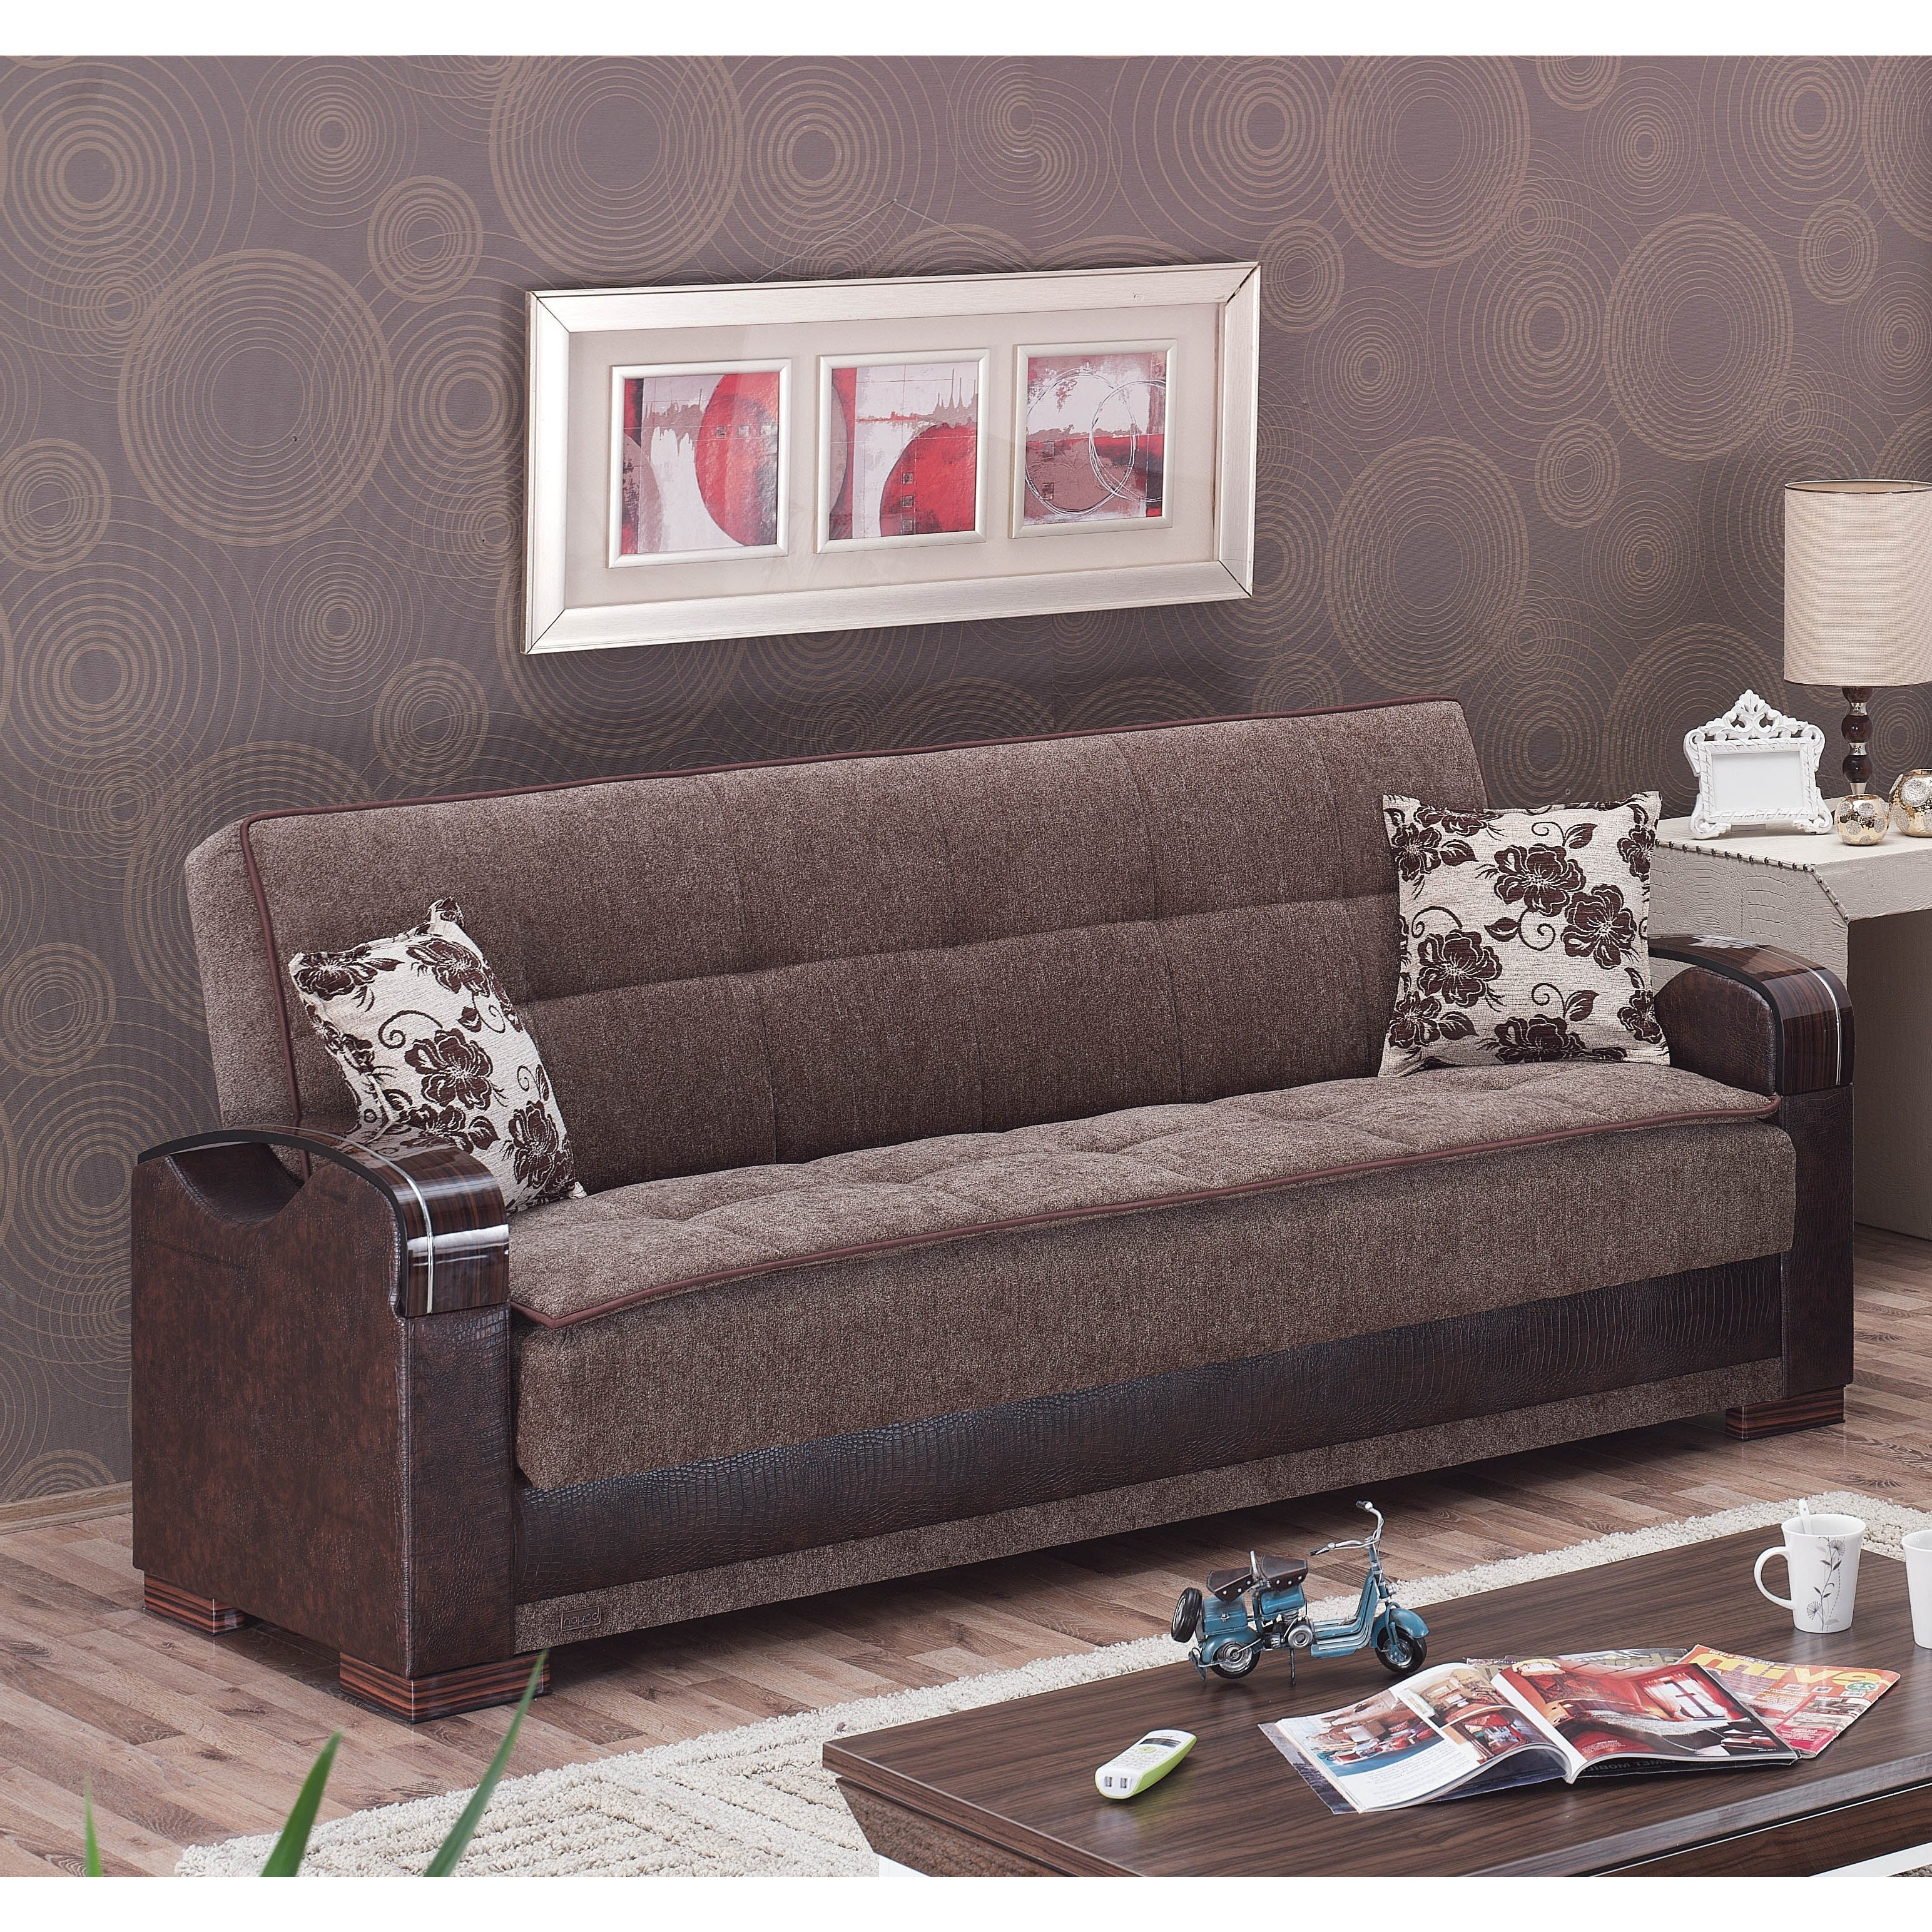 Hartford Brown Fabric/ Reptile-embossed Vinyl Sofa Bed at Sears.com